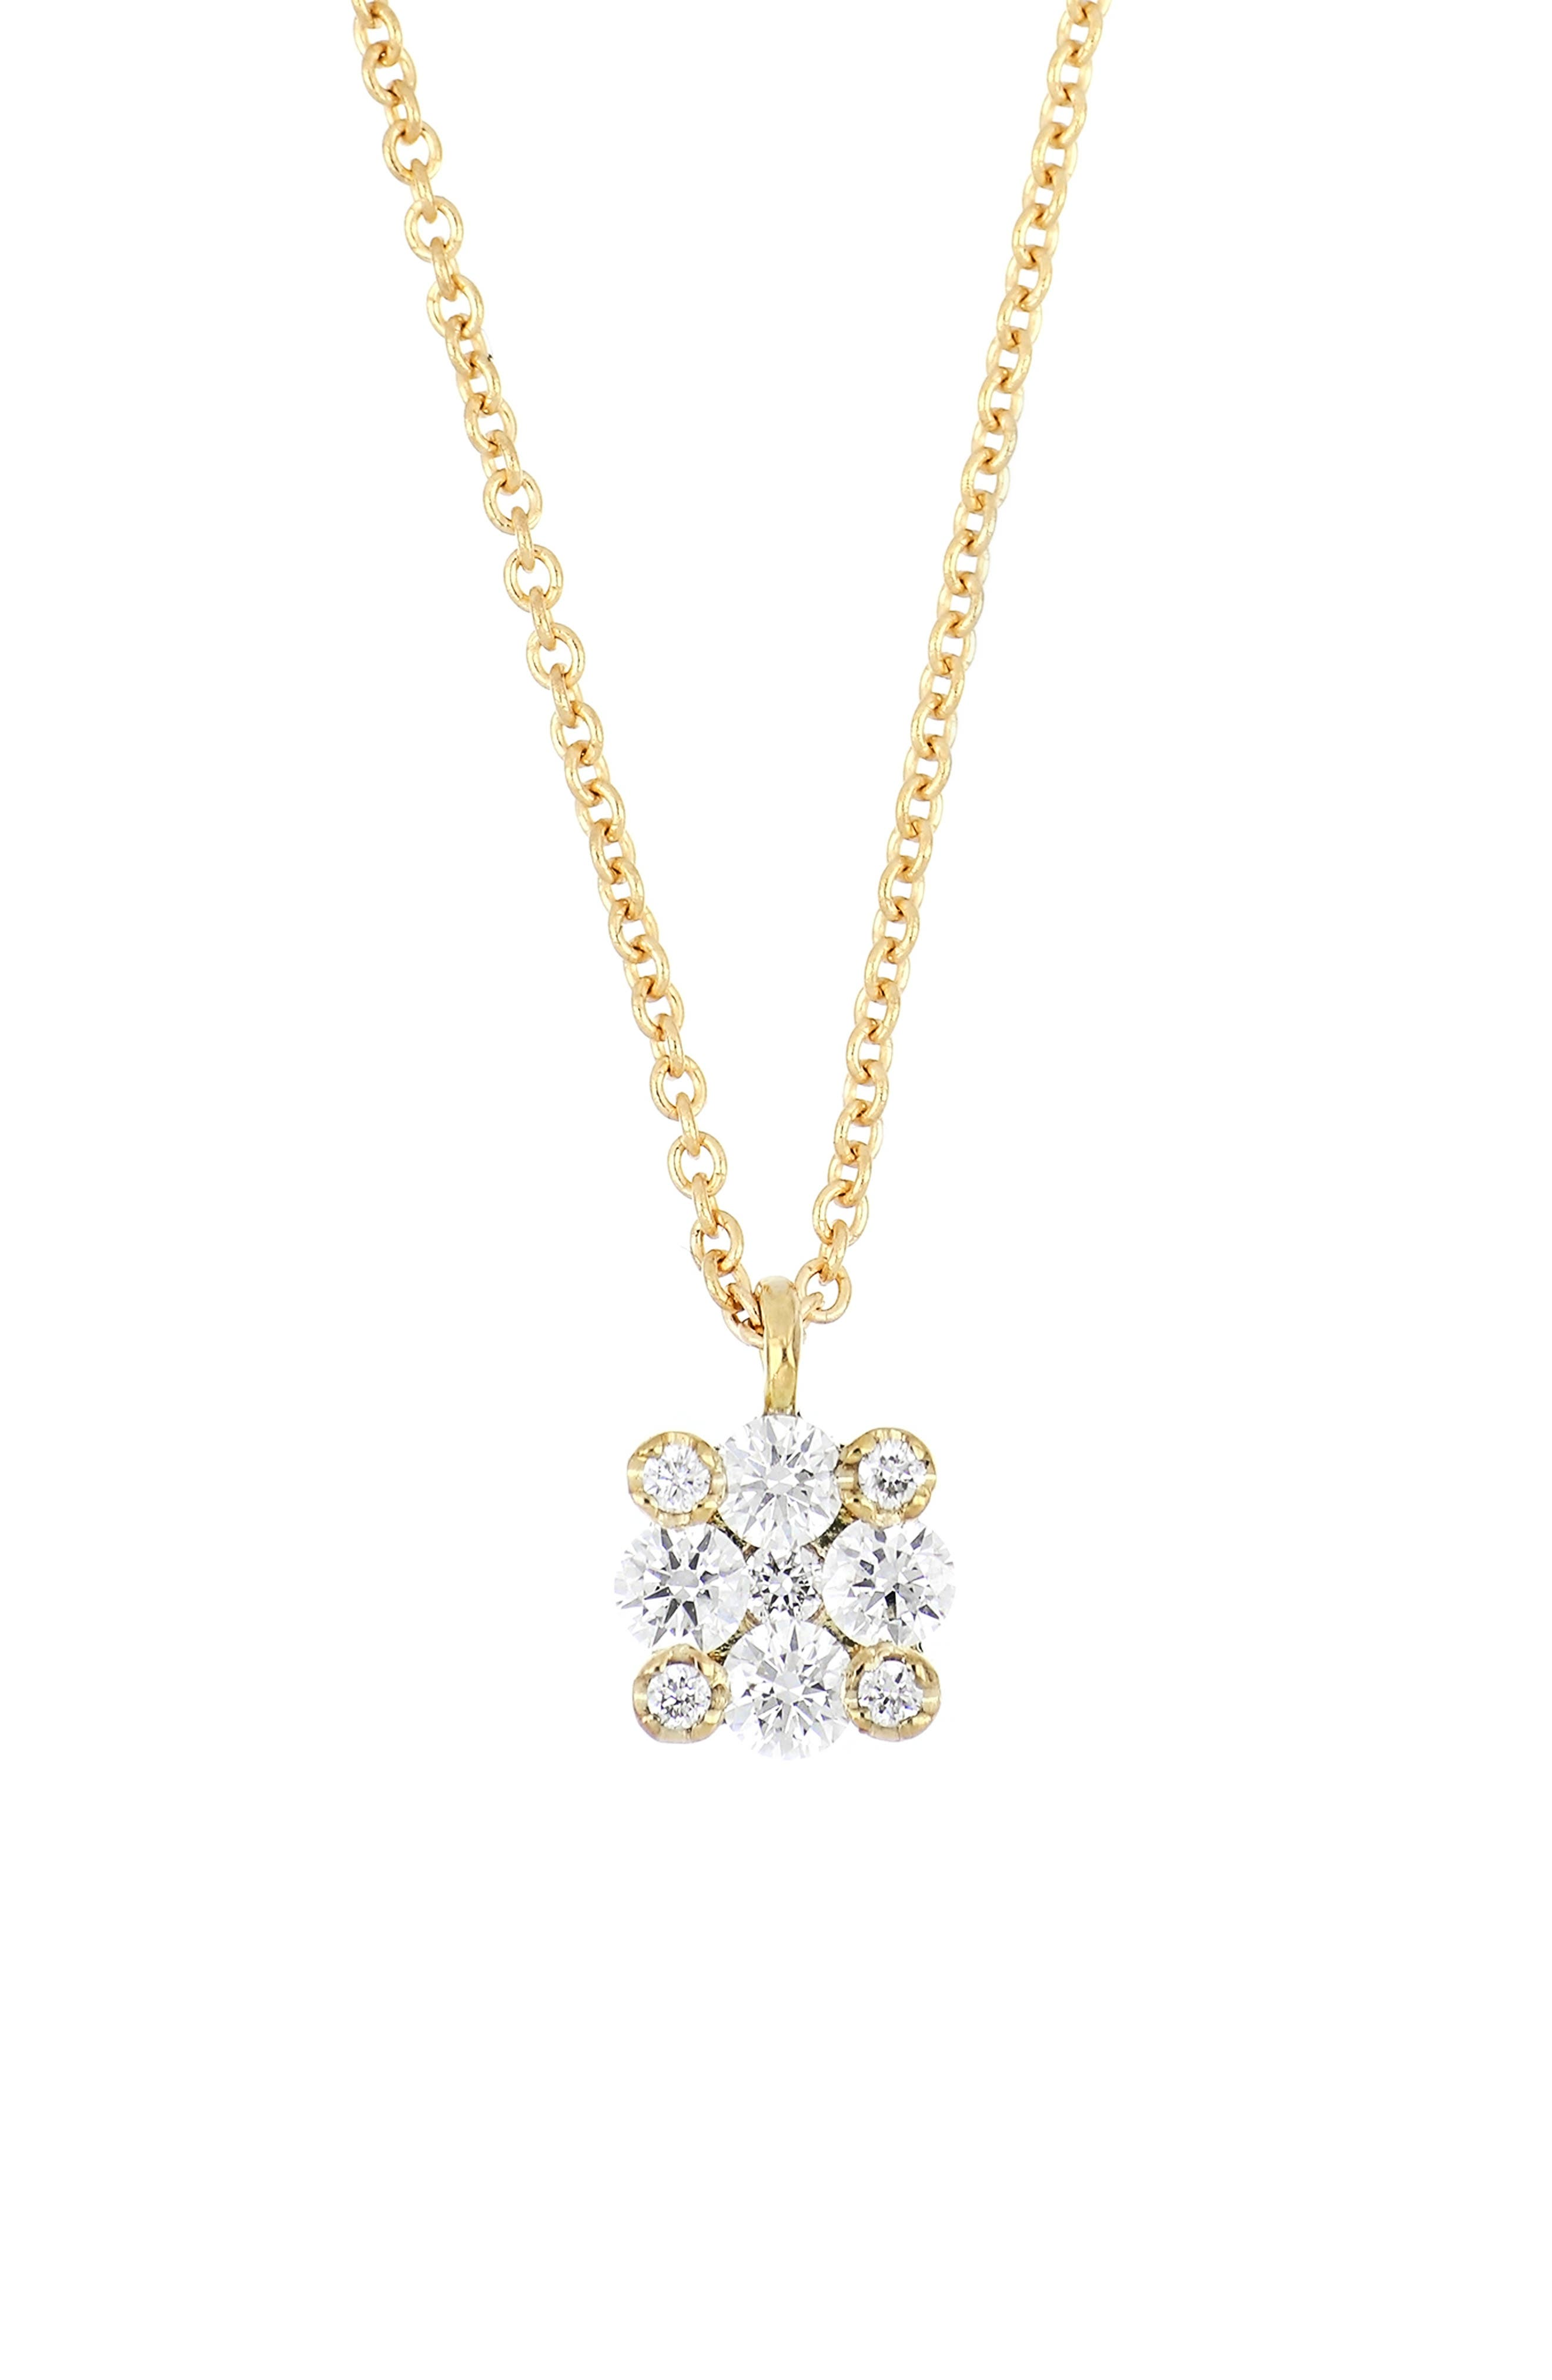 Inspired by modern architecture, overlapping diamonds create sparkling dimension in this timeless pendant necklace that\\\'s handcrafted in 18-karat gold. Style Name: Bony Levy Getty Botanical Small Pendant Necklace (Nordstrom Exclusive). Style Number: 6057087. Available in stores.